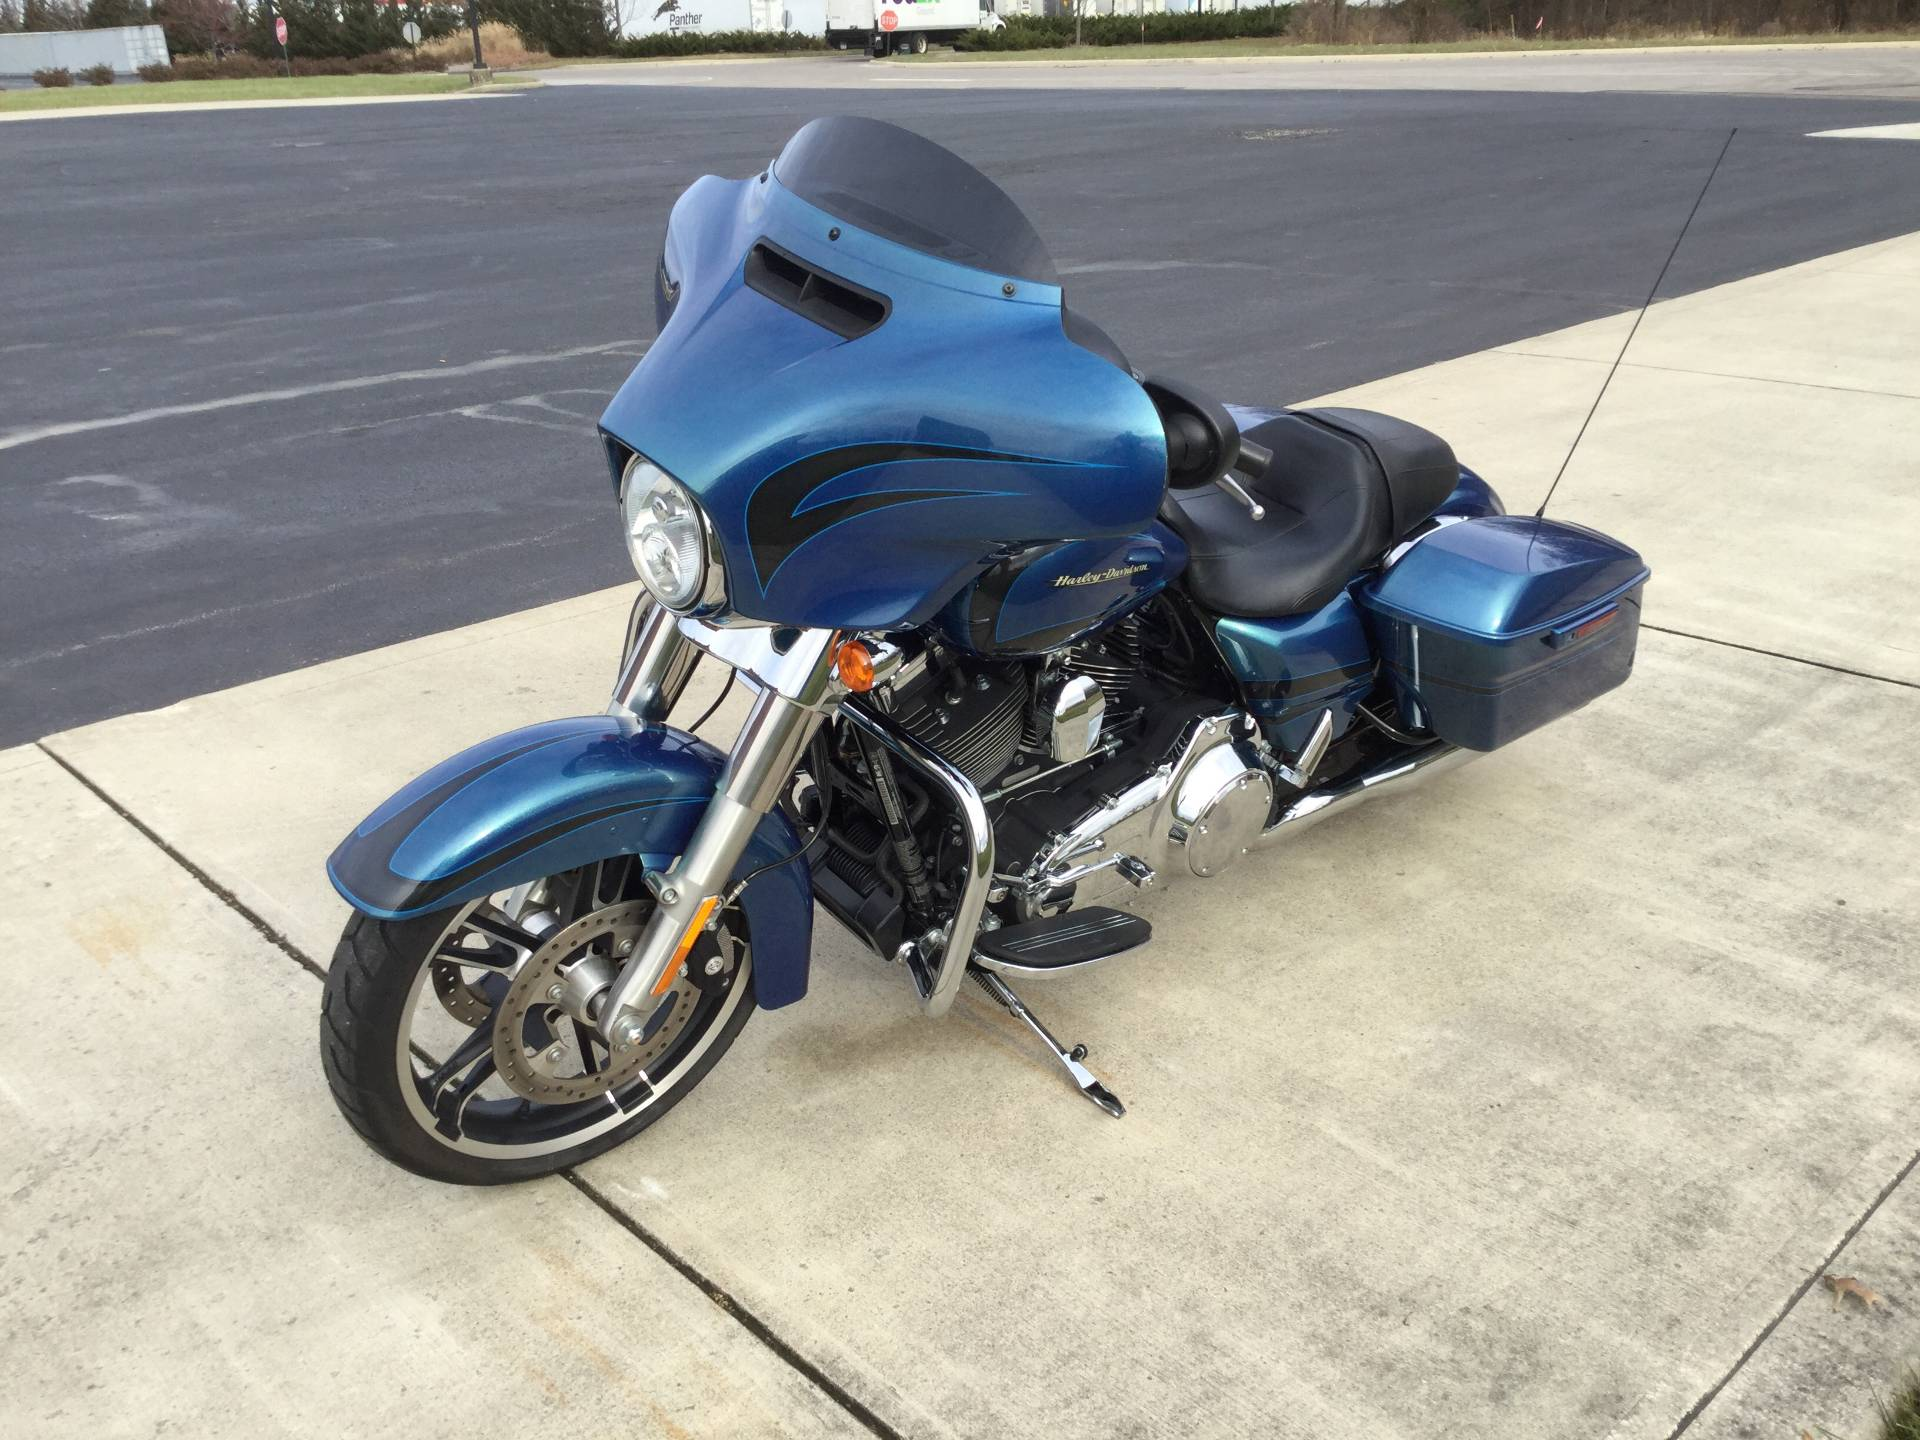 2014 Harley-Davidson Street Glide in Sunbury, Ohio - Photo 5